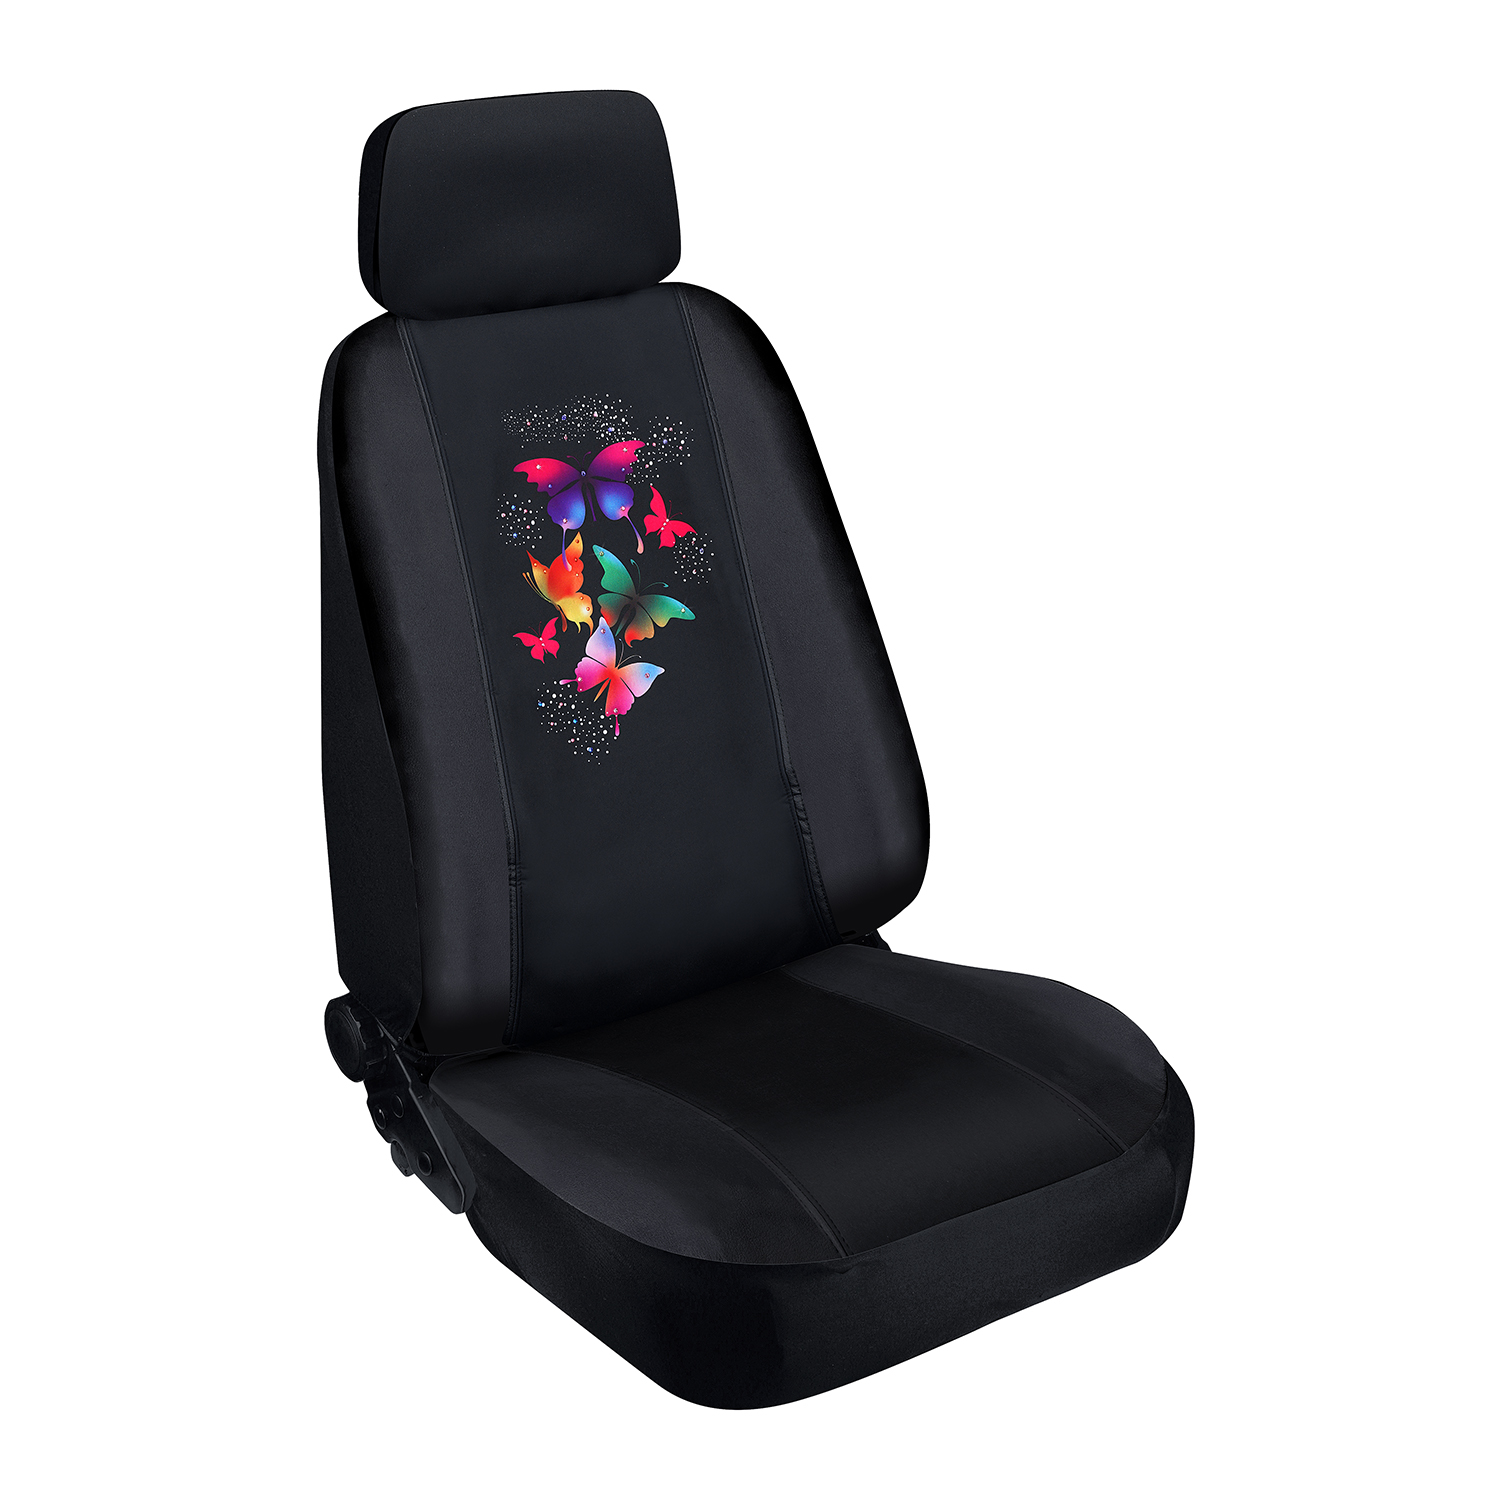 Pilot Premium Butterfly Seat Cover Featuring Swarovski Crystals